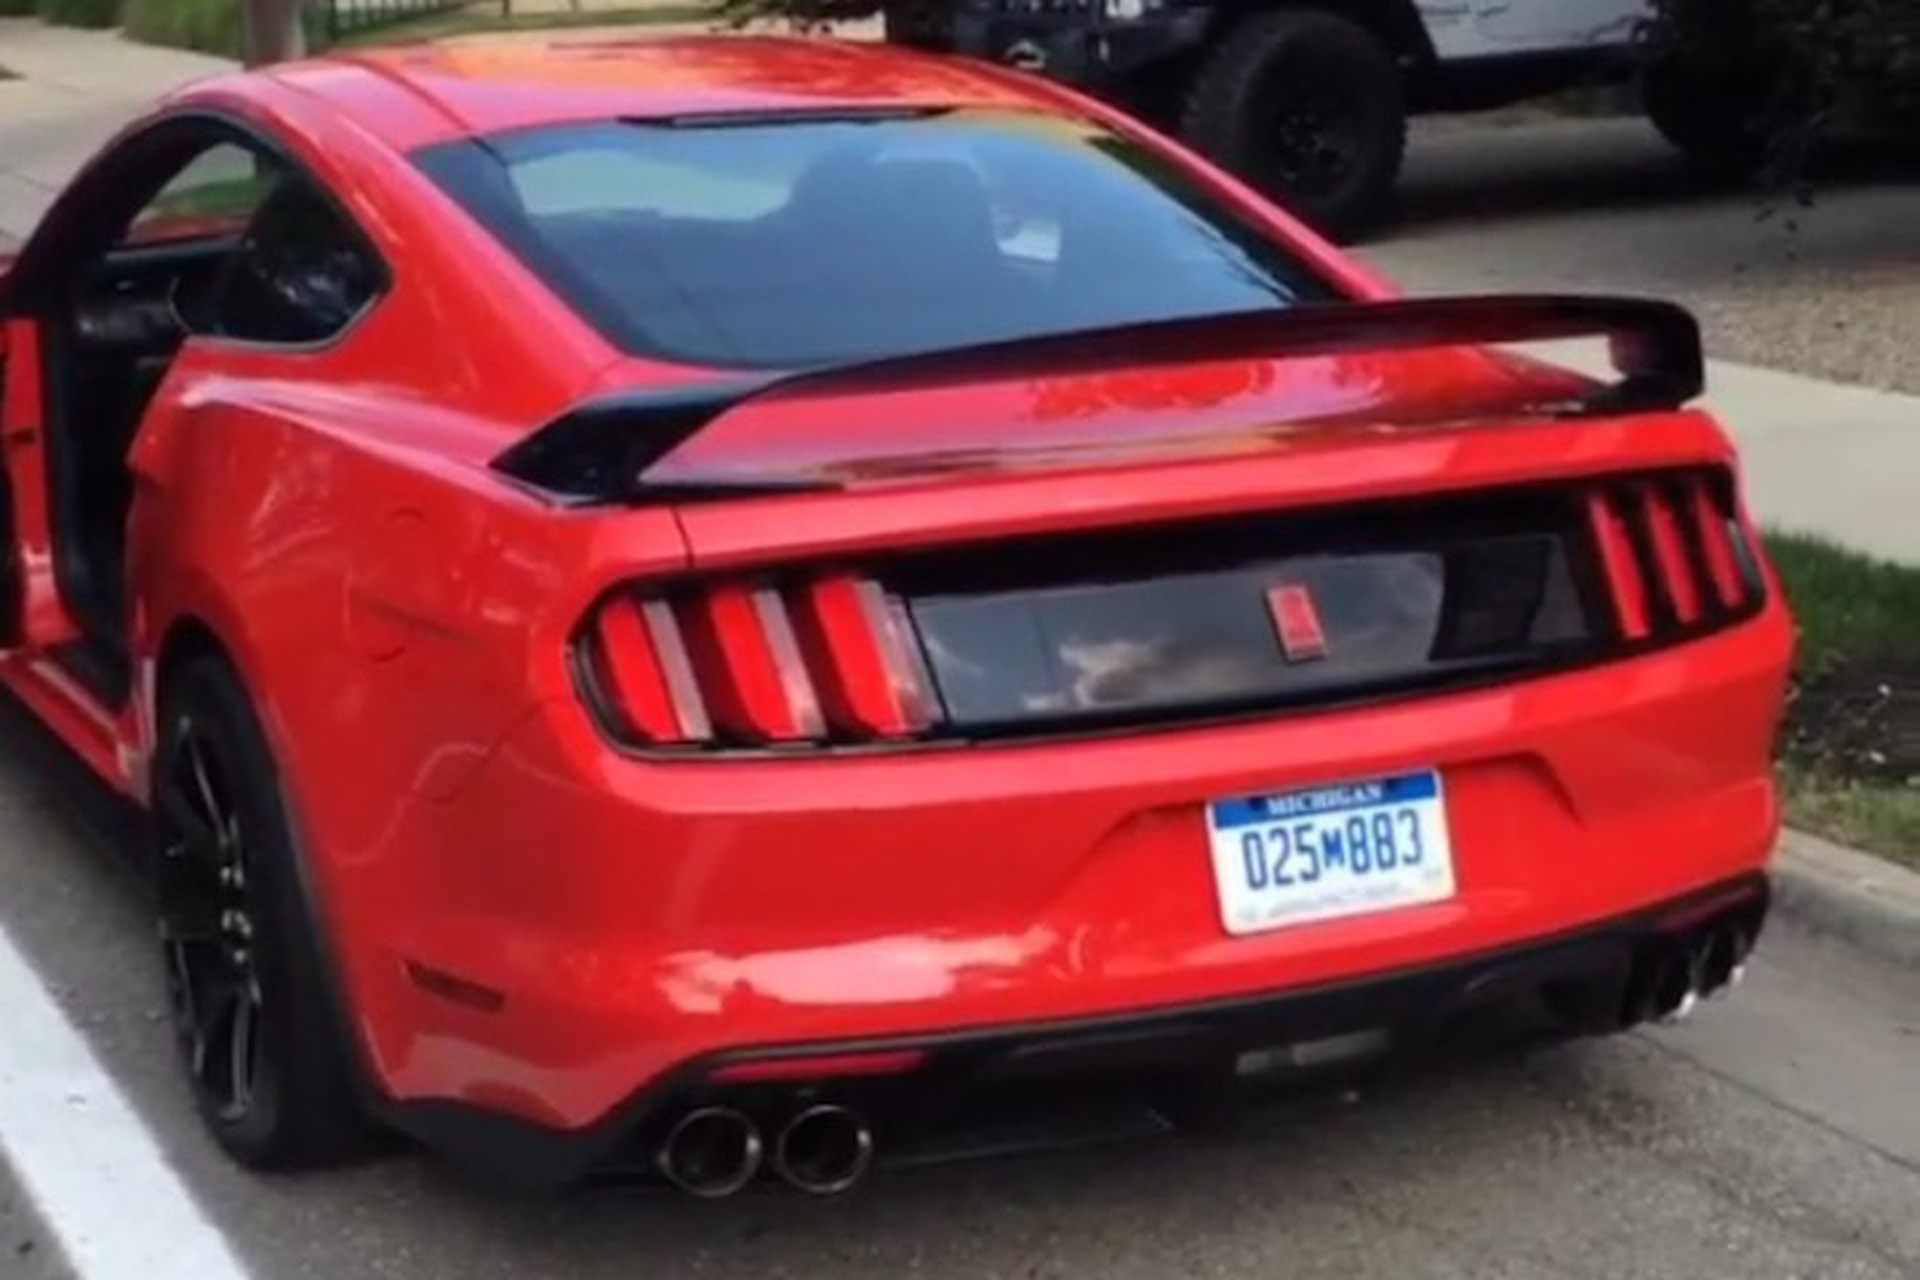 The New Shelby GT350R Might Be the Meanest Sounding Car on the Planet